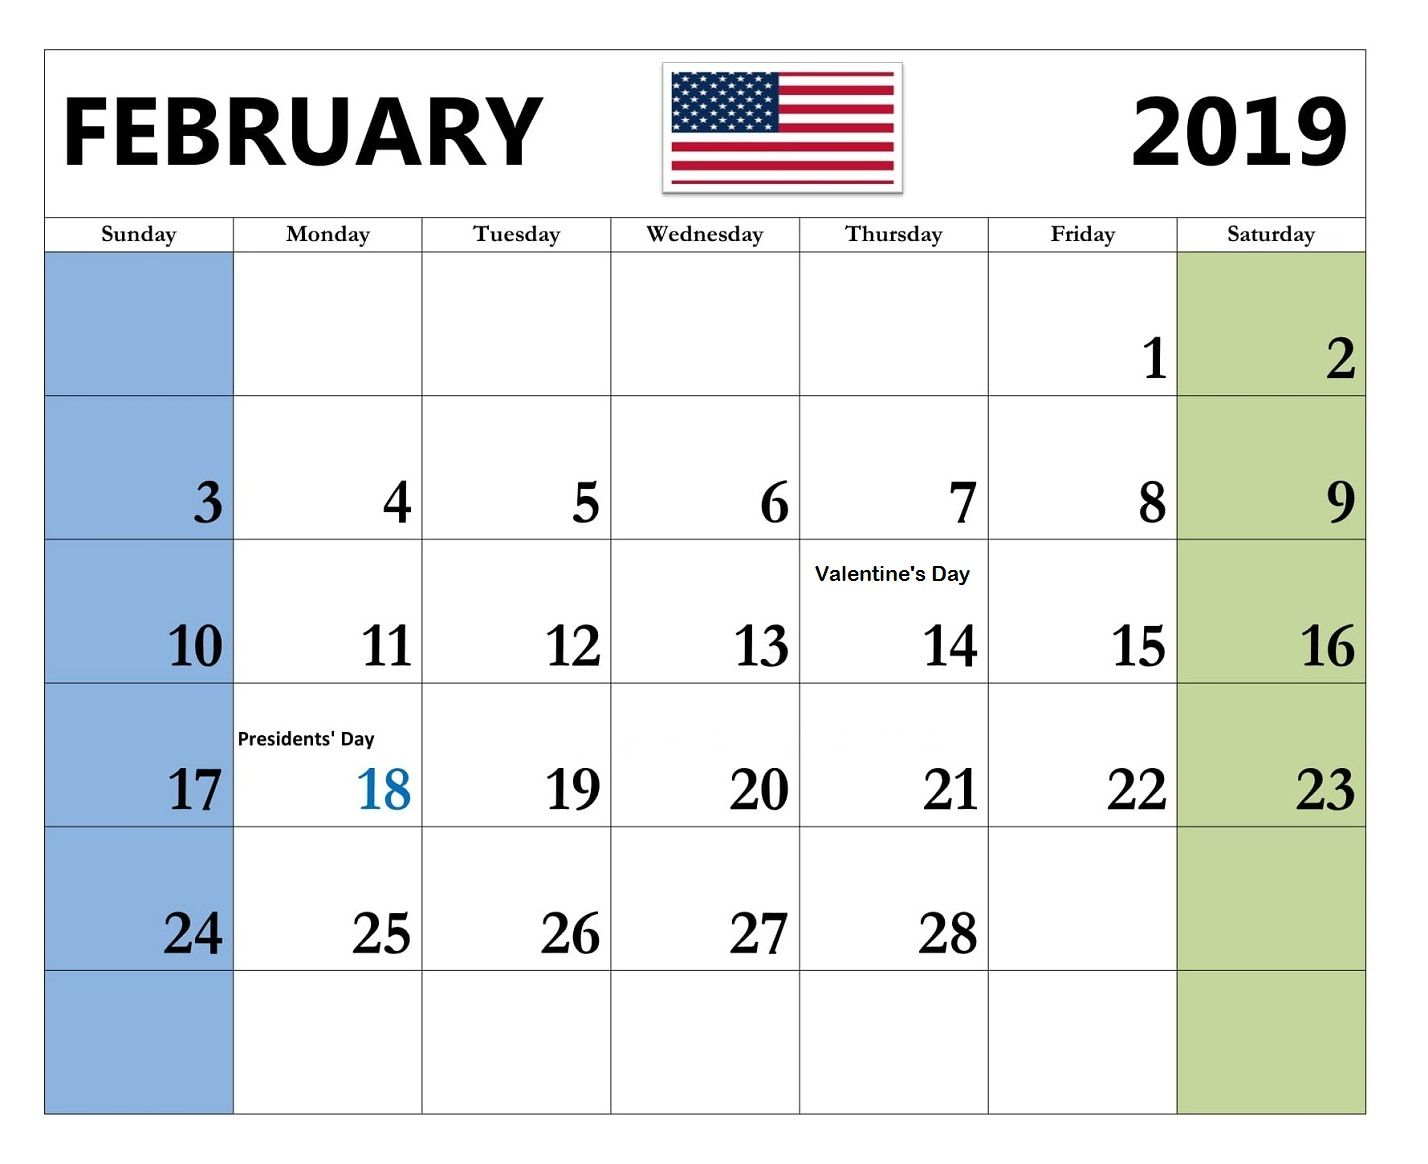 2019 February Calendar With Holidays Usa Feb 2019 Calendar With Holidays USA #feb #feb2019 #holidays